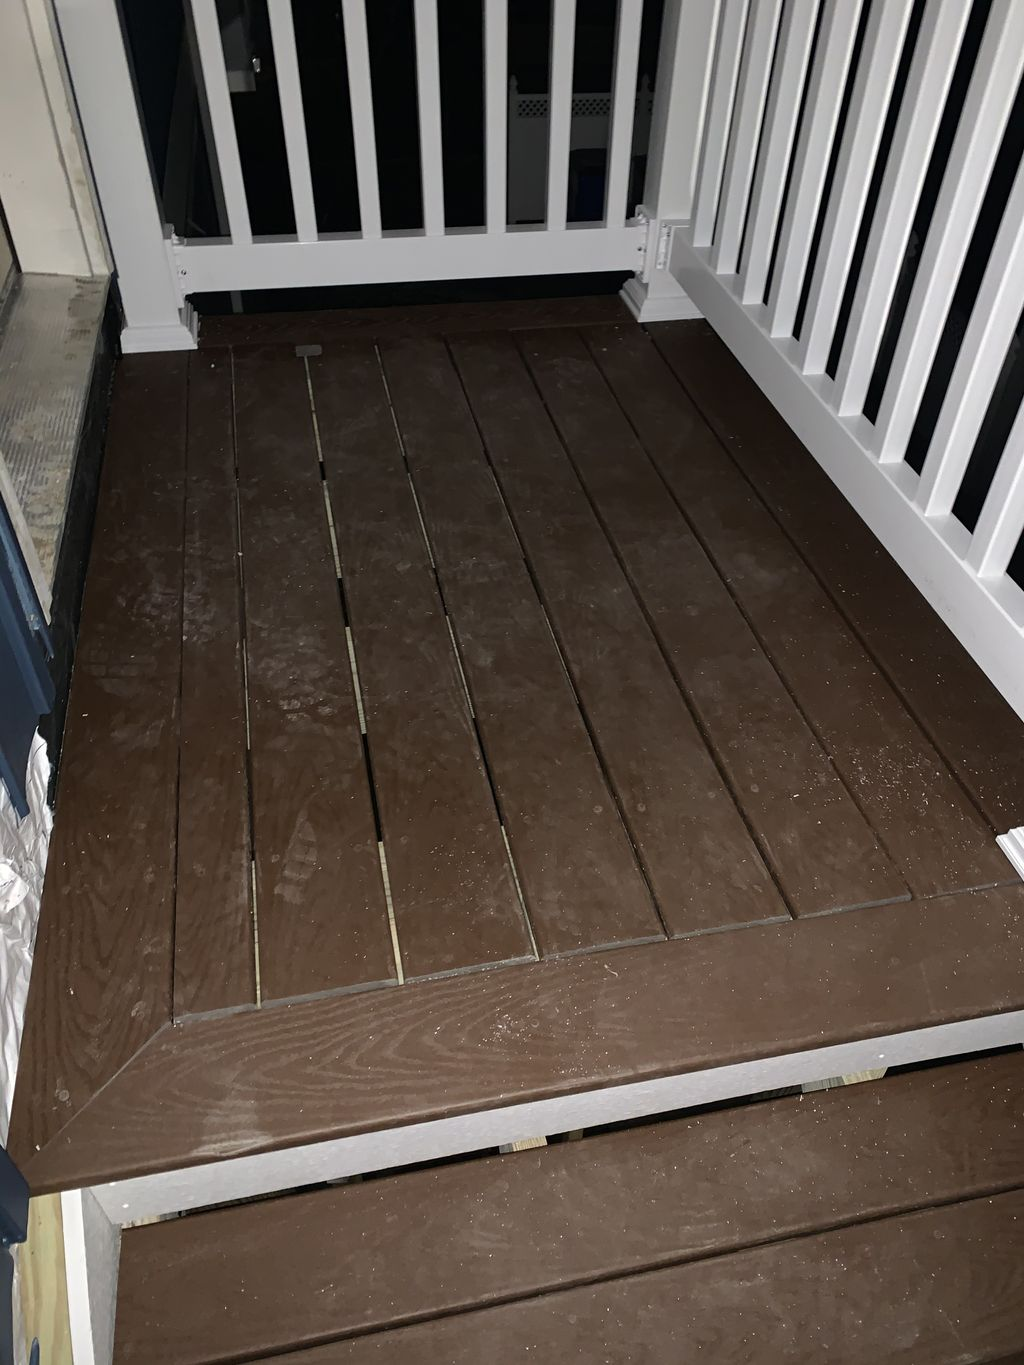 Removed existing steps and replaced with new ones up to code